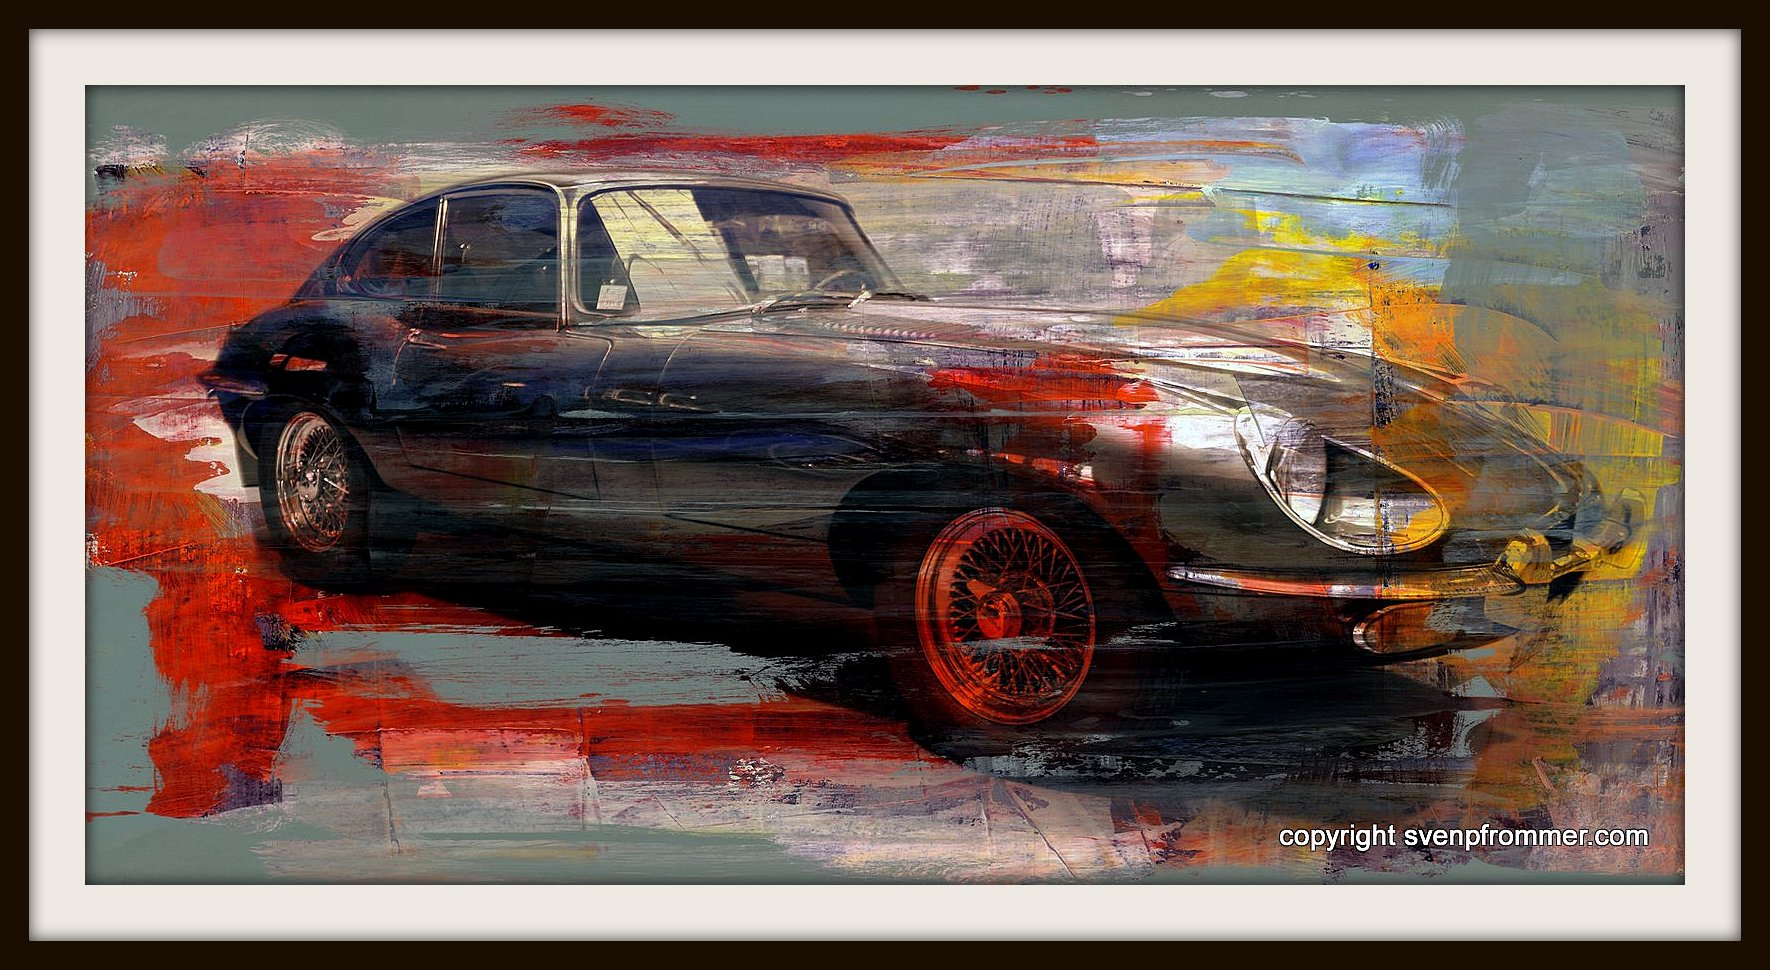 Classic Cars Sven Pfrommer Visual Art Photography